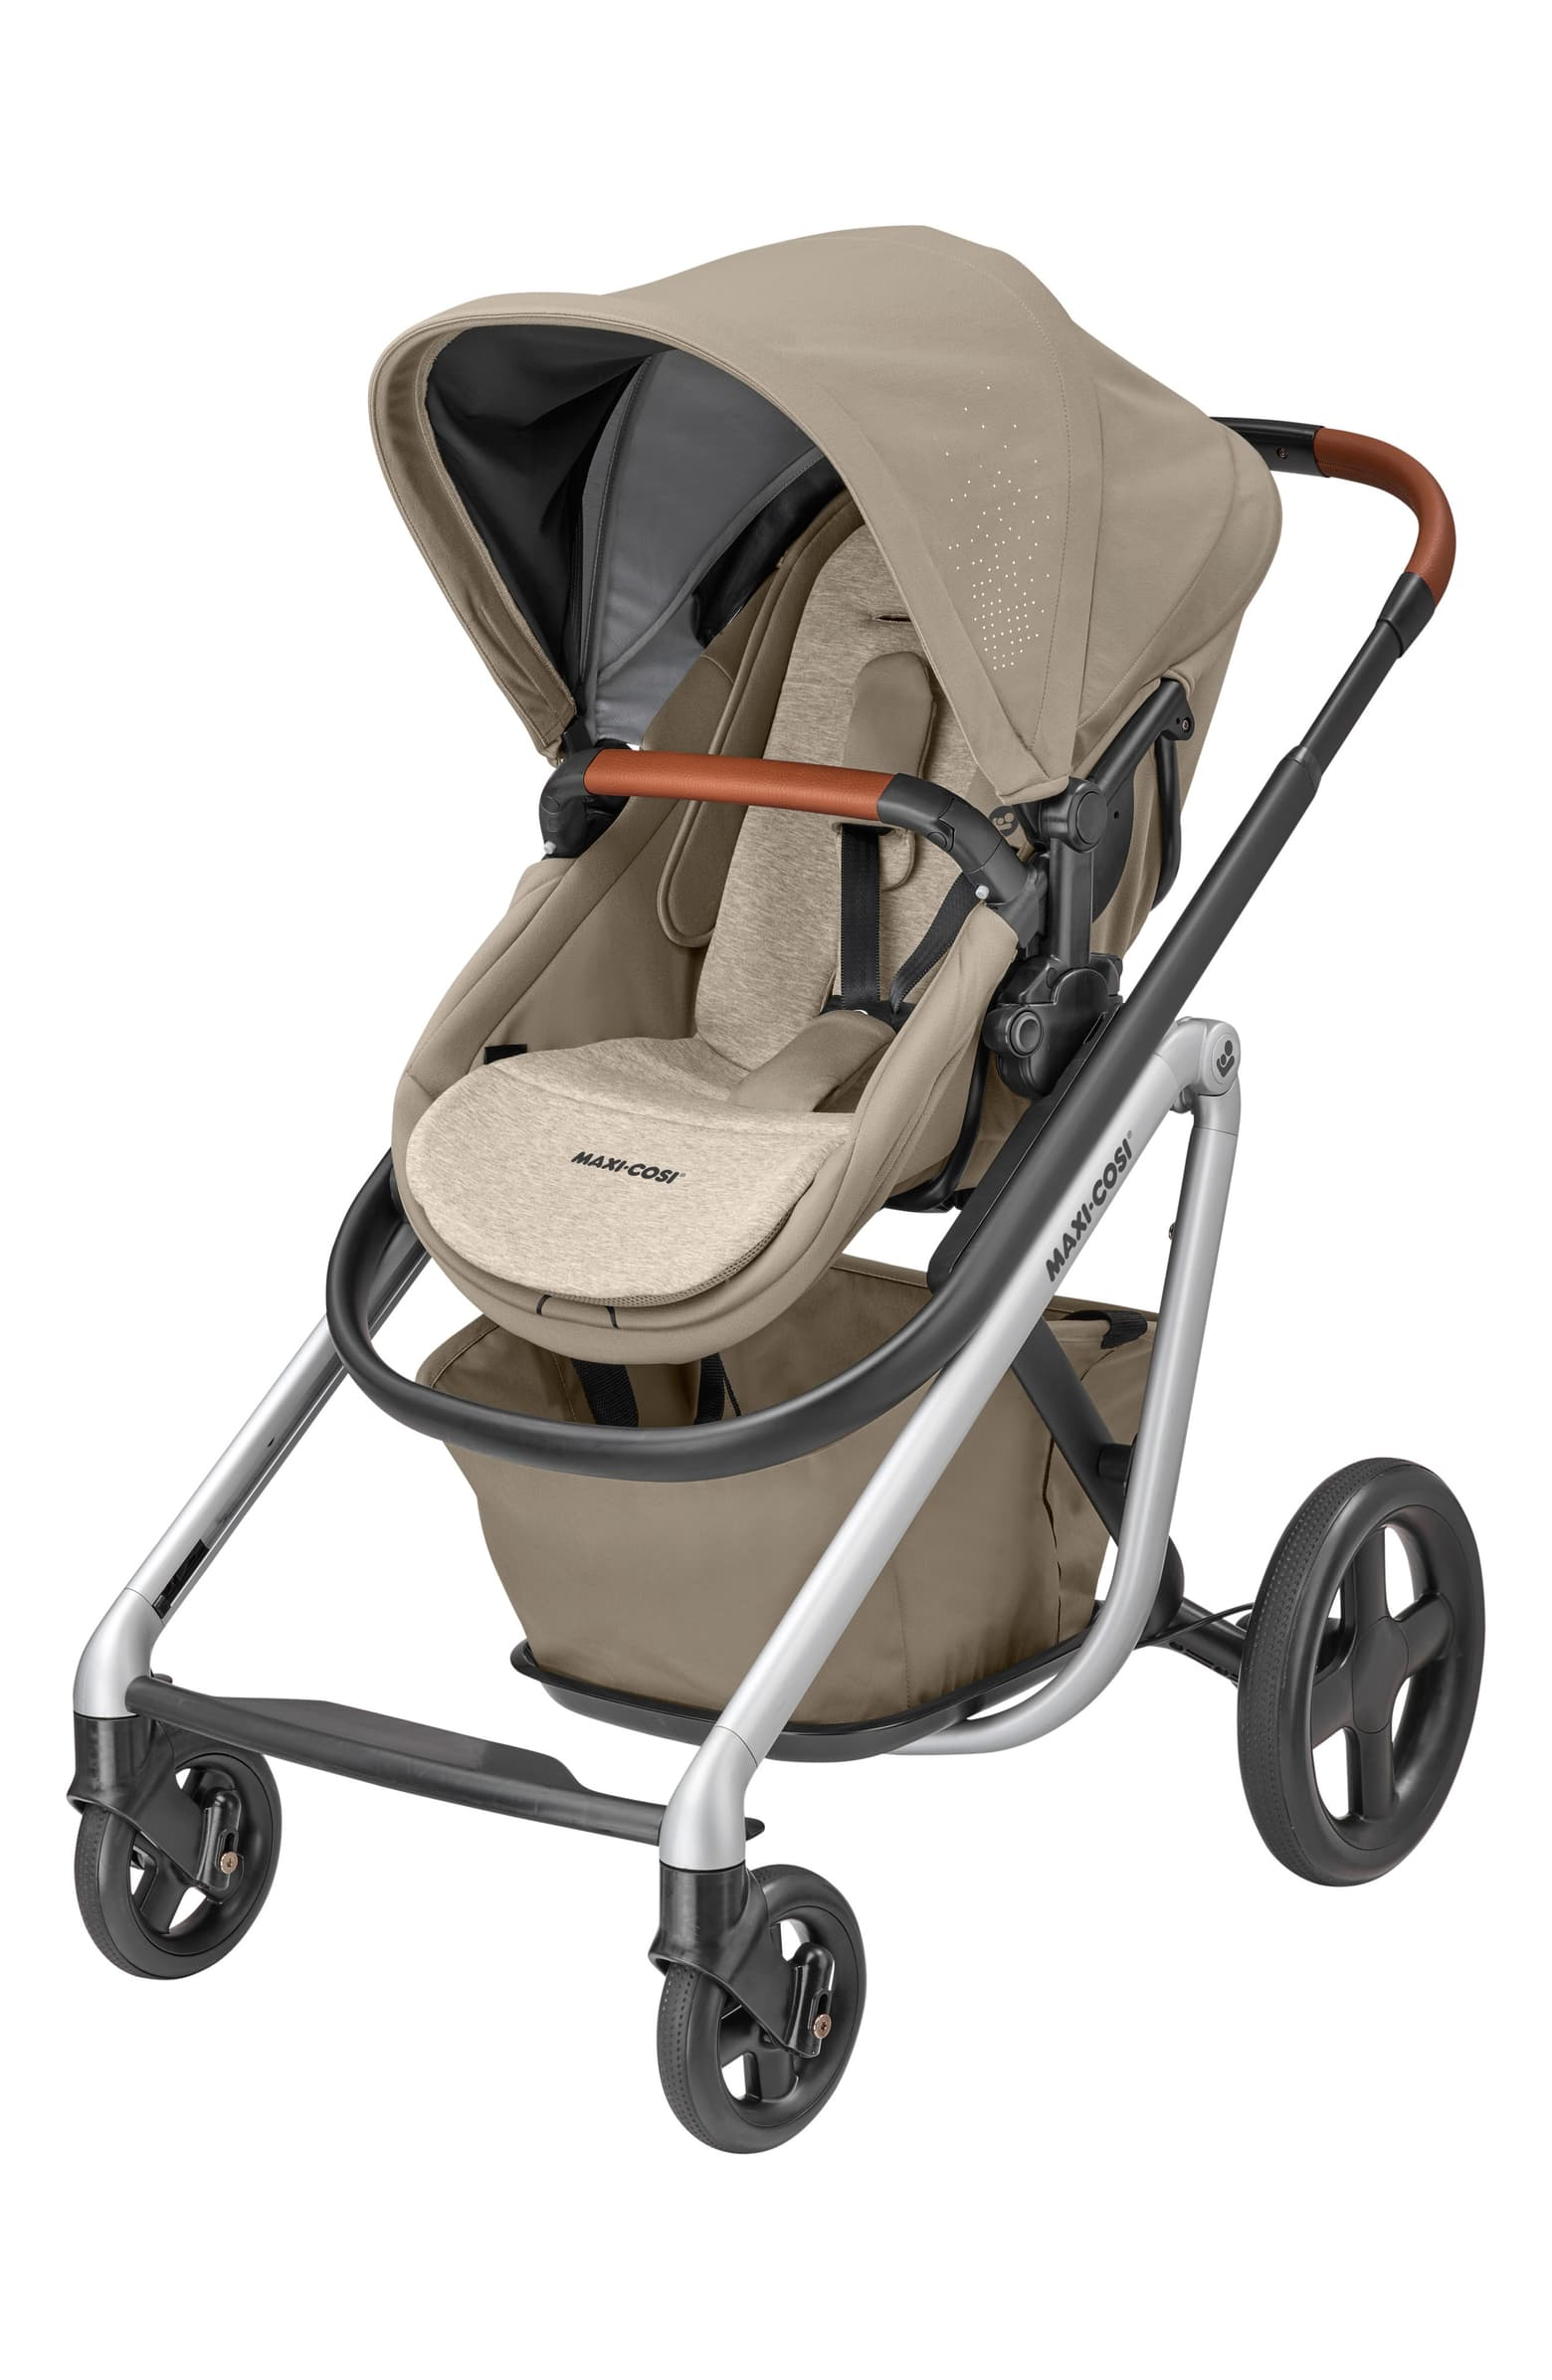 infant products - stroller